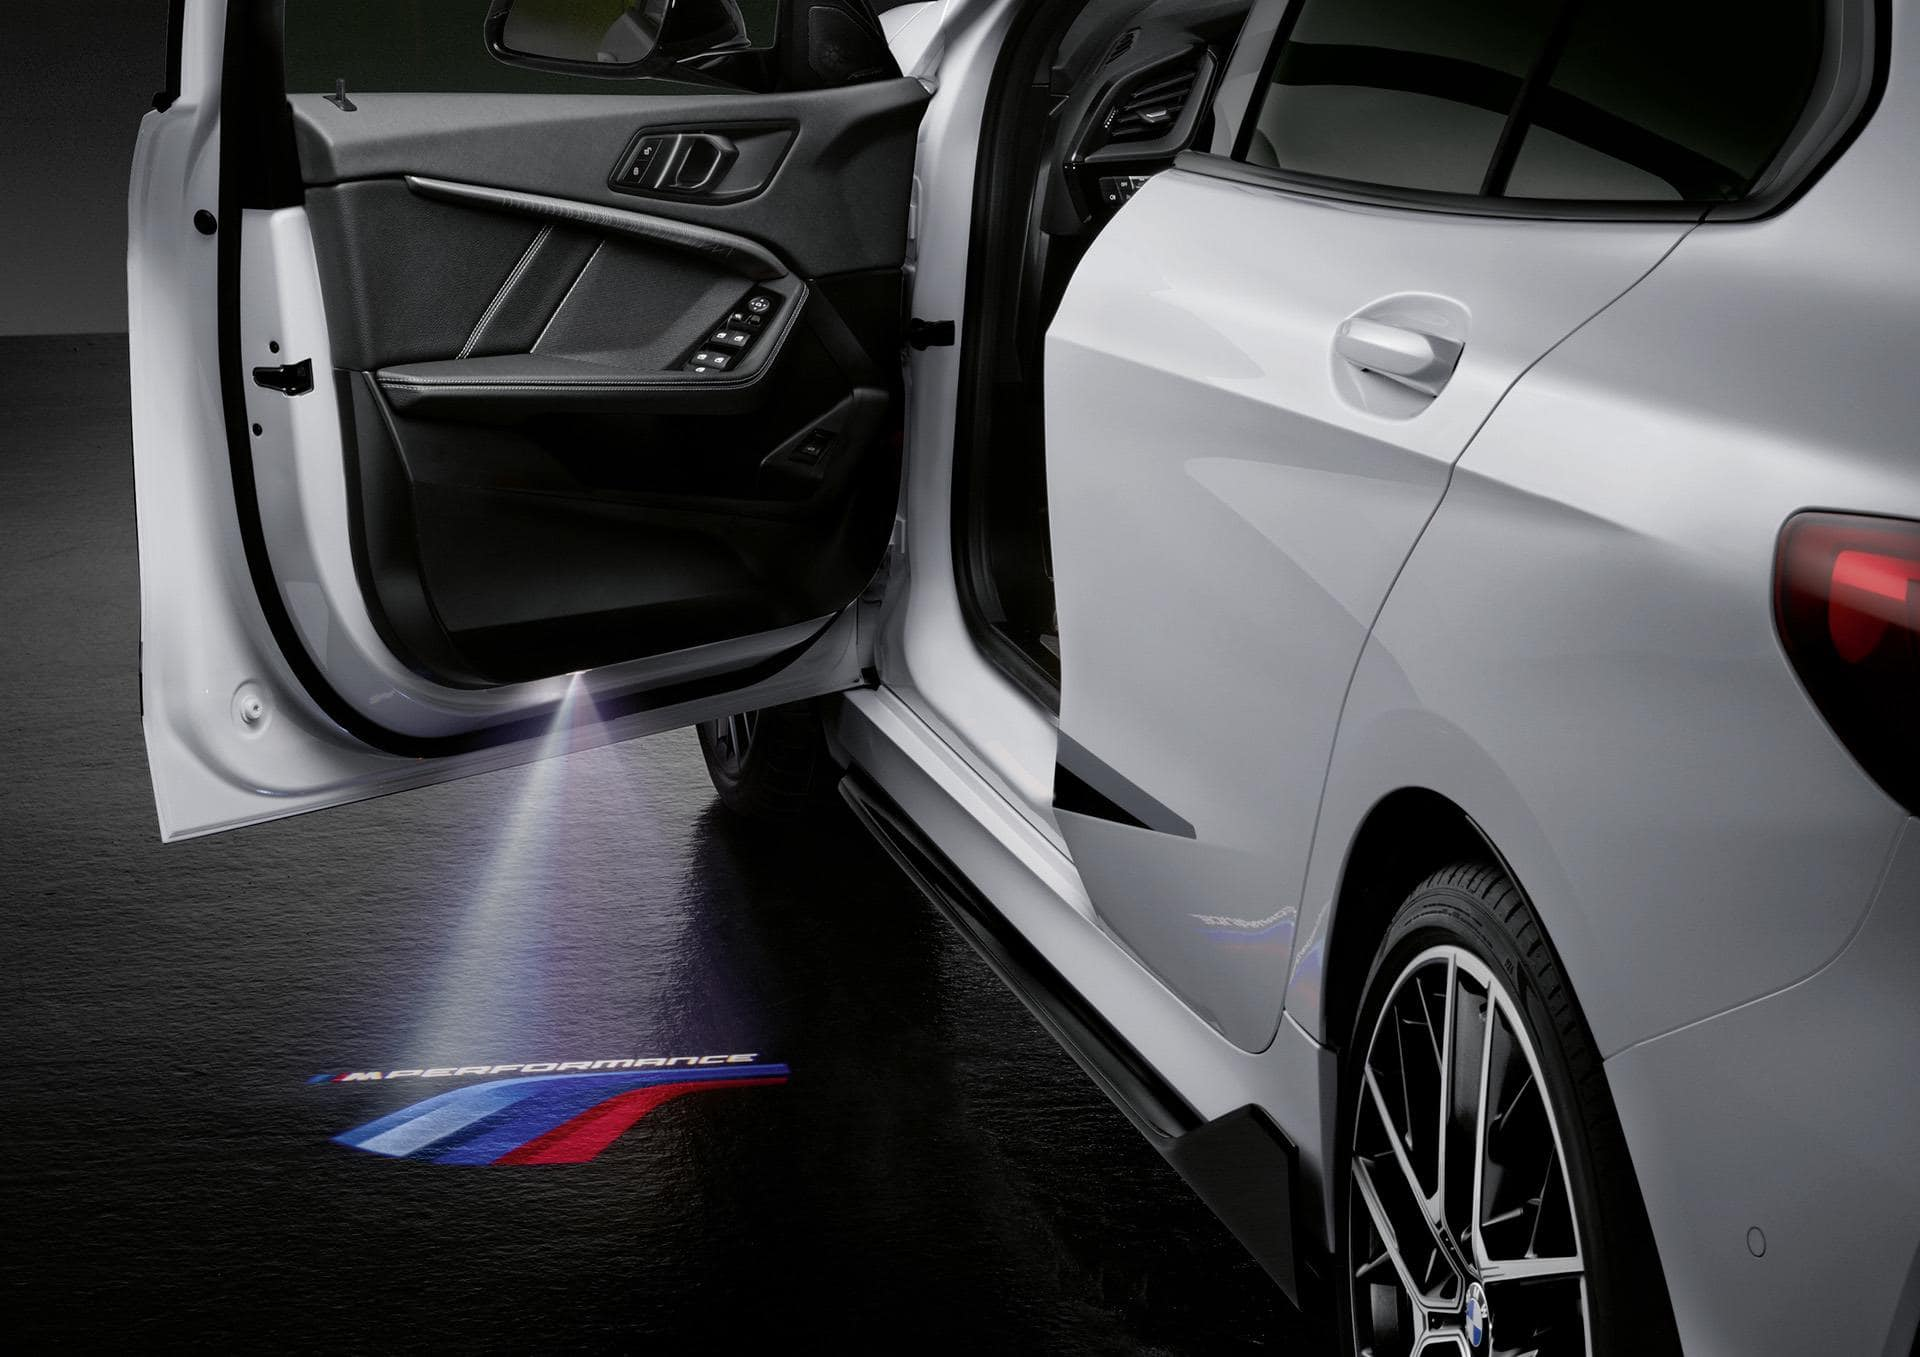 BMW-2-Series-Coupe-M-Performance-Parts-17